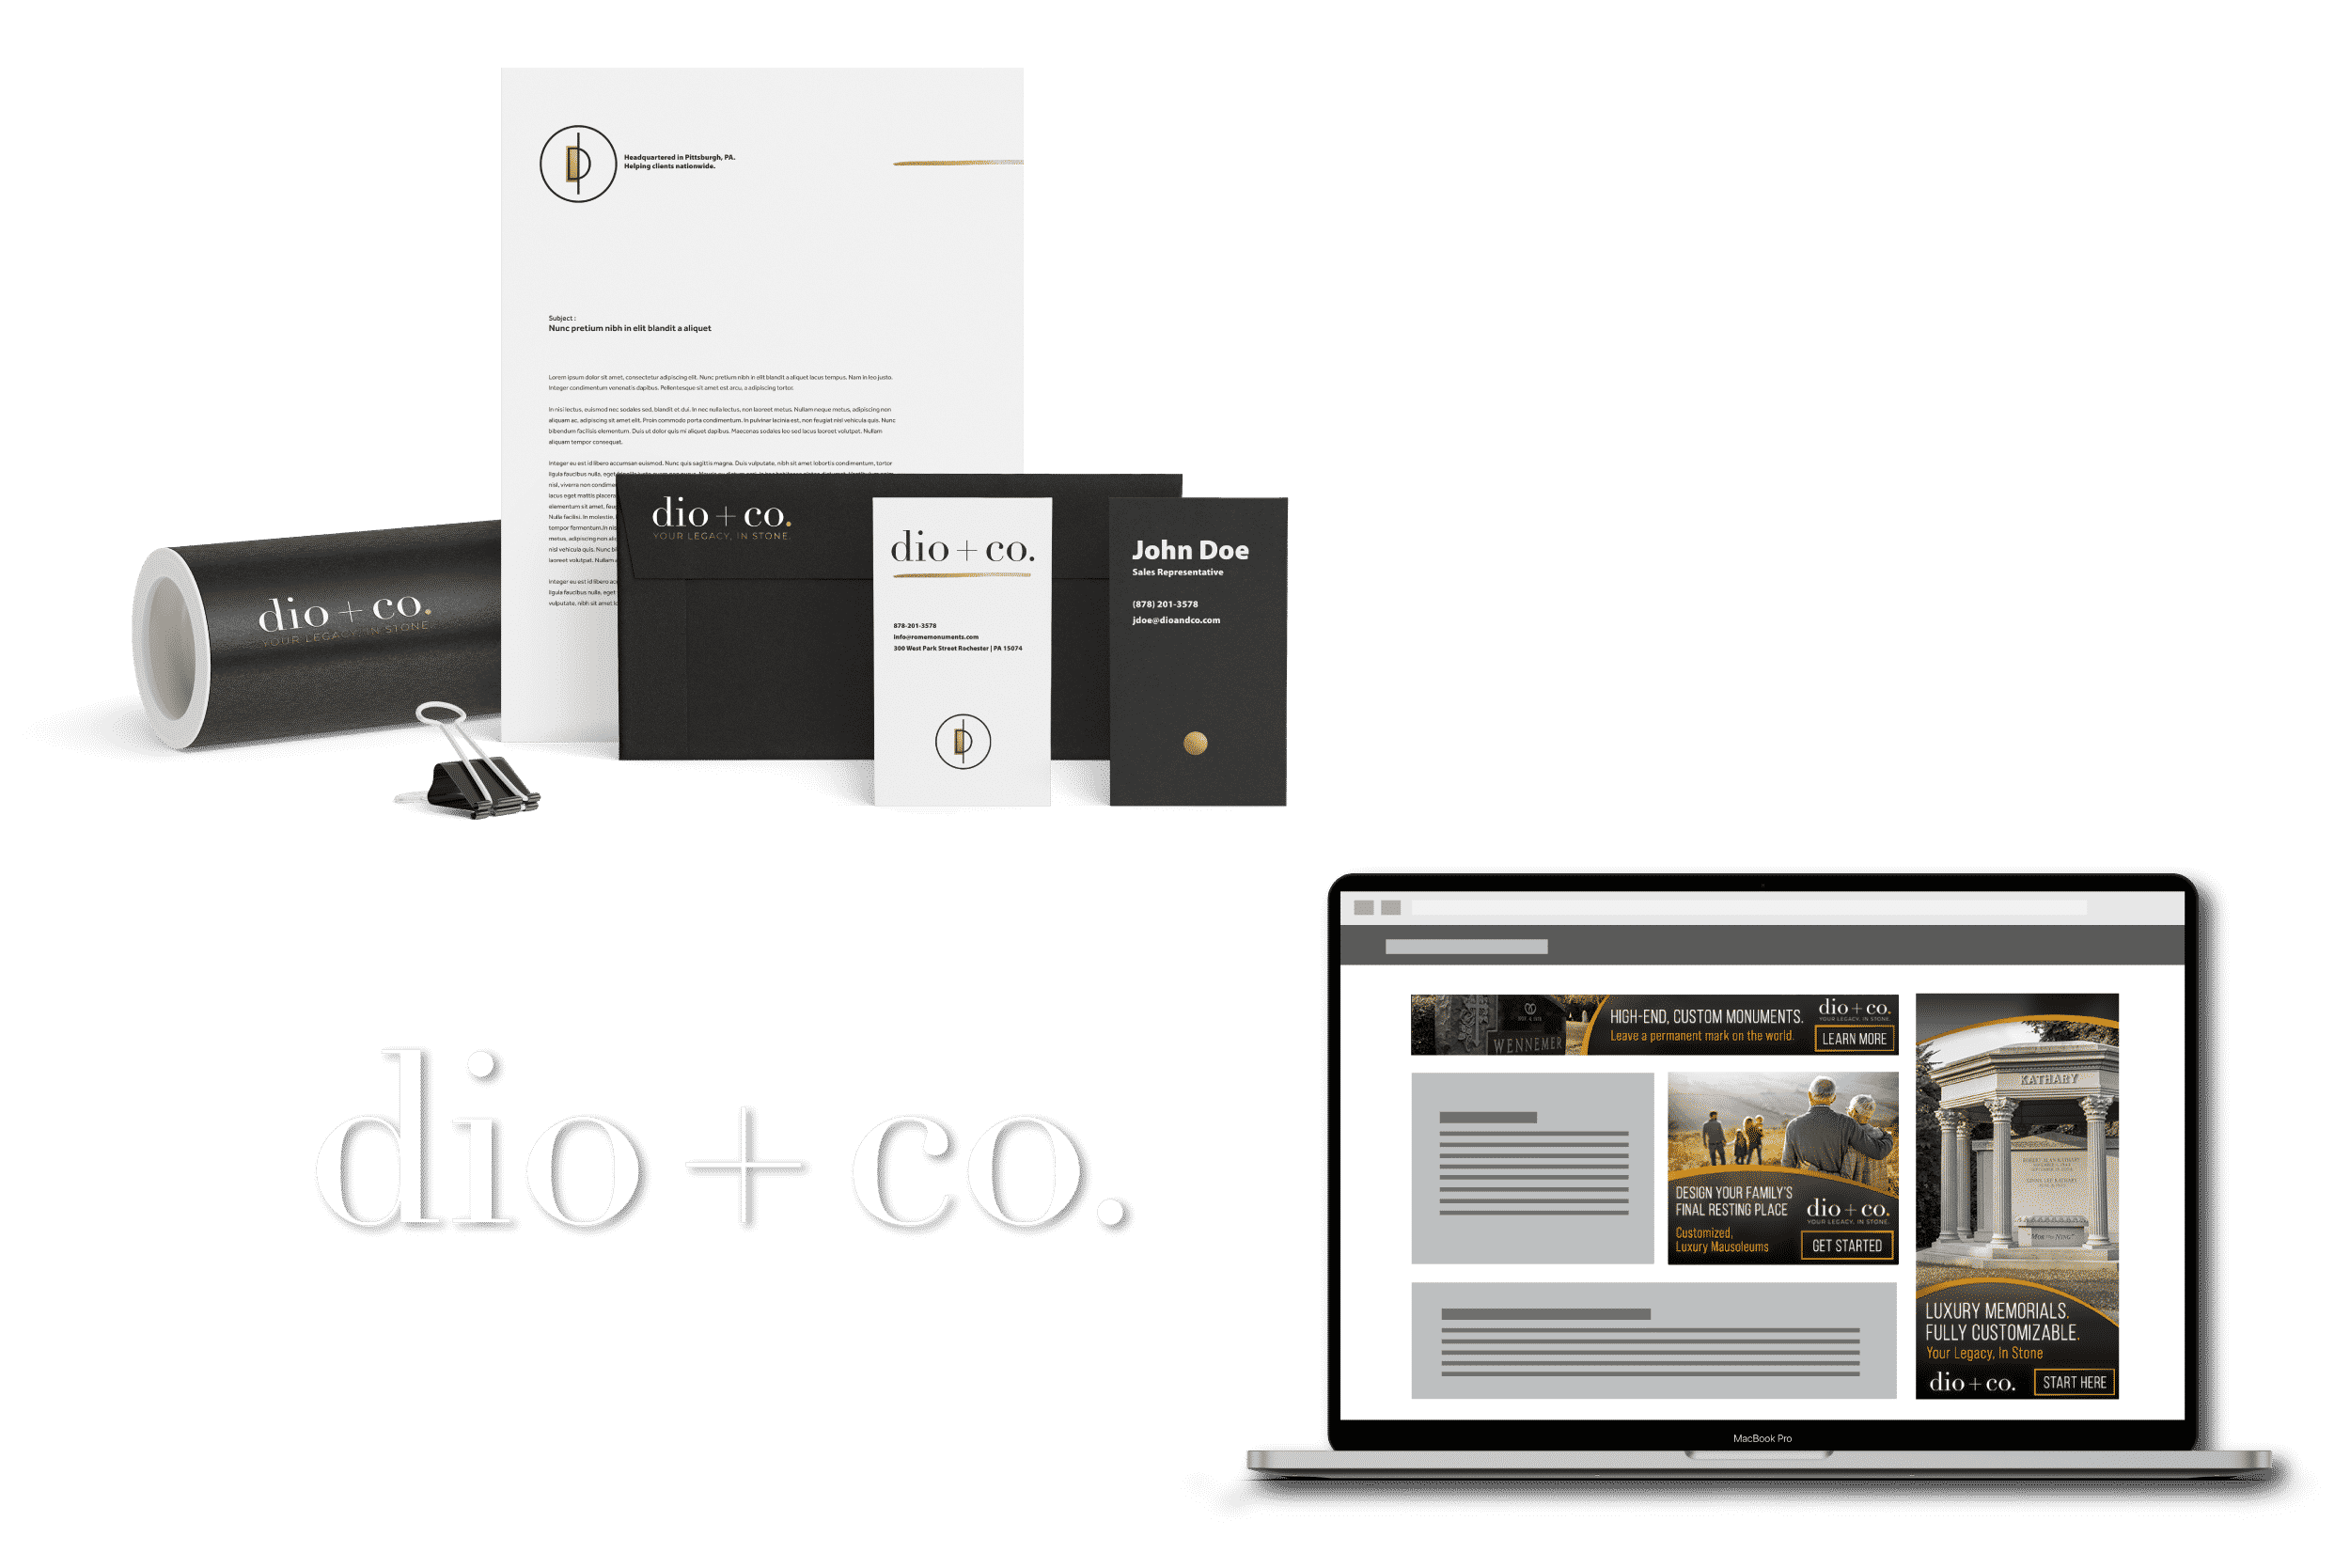 dio and co graphic design work